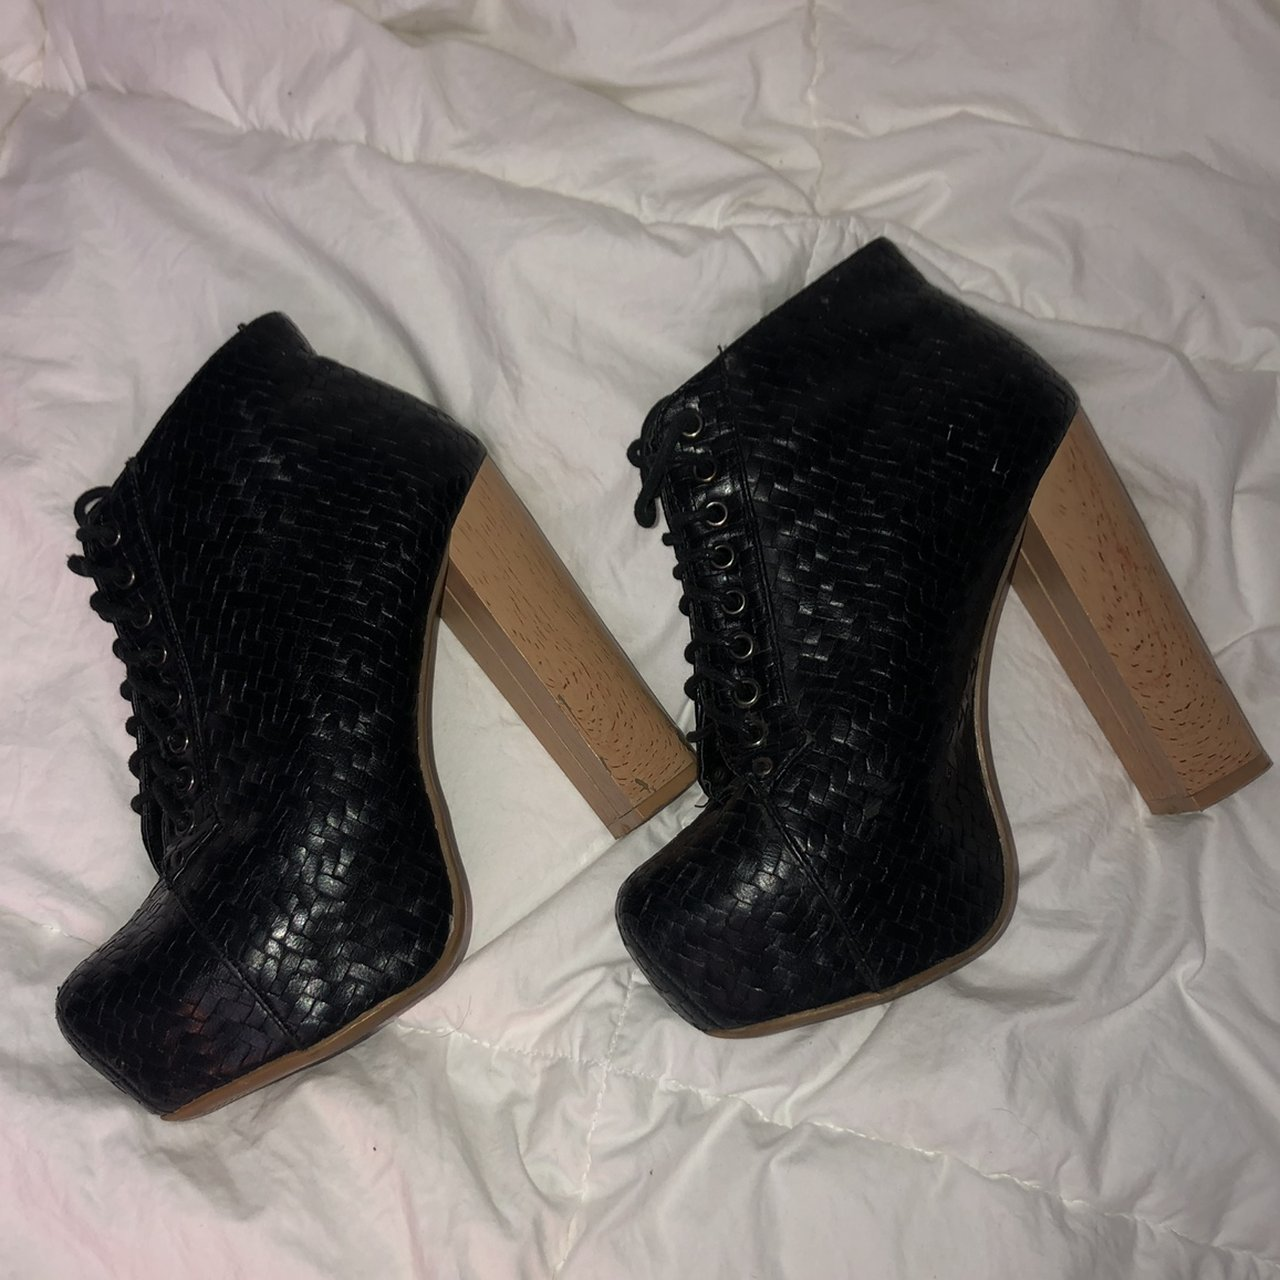 39e5602ddb19 Jeffrey Campbell Style Shoes. There